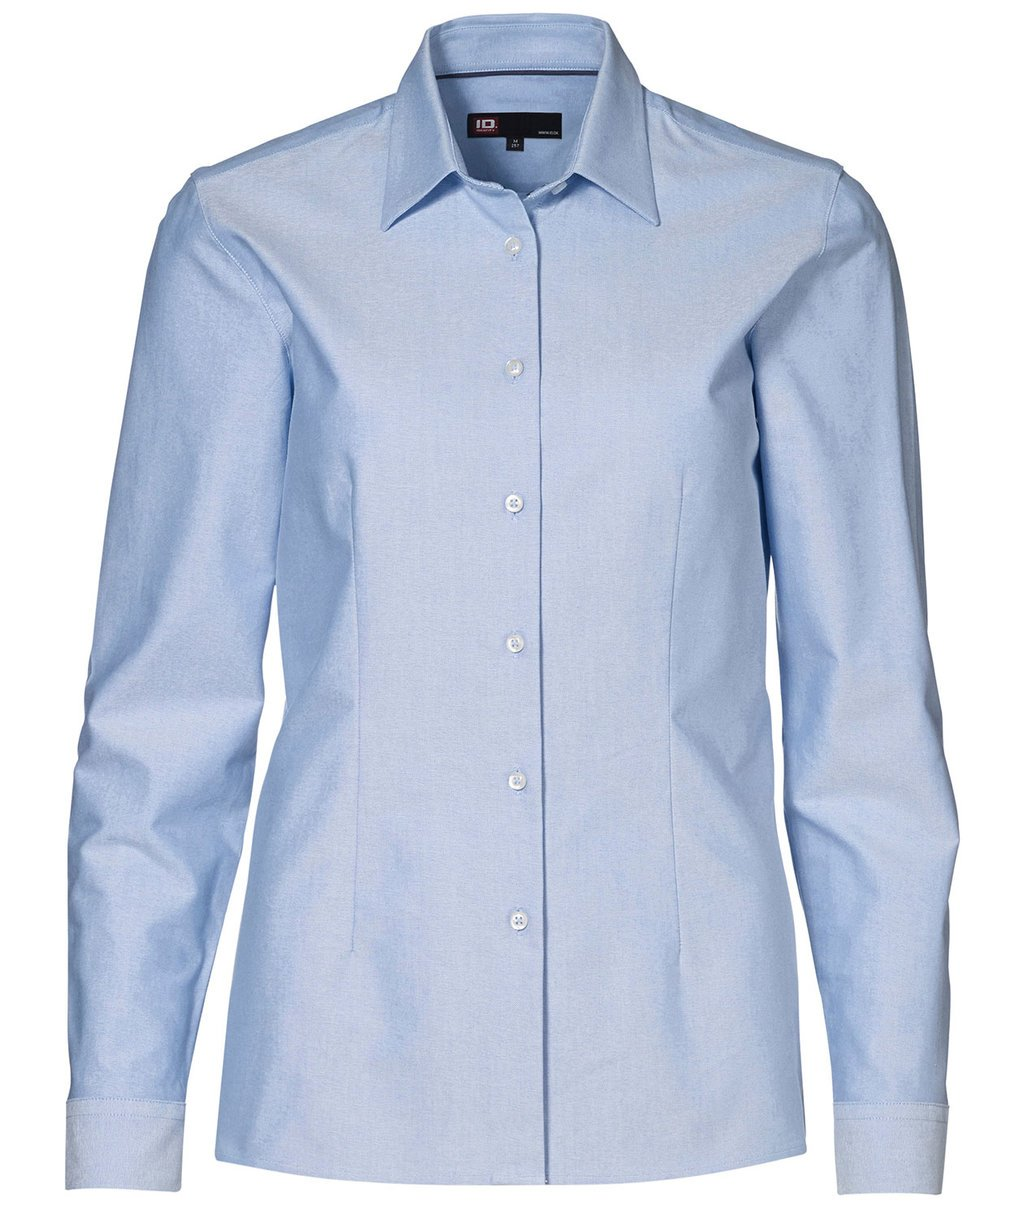 ID Oxford women's shirt , Light Blue